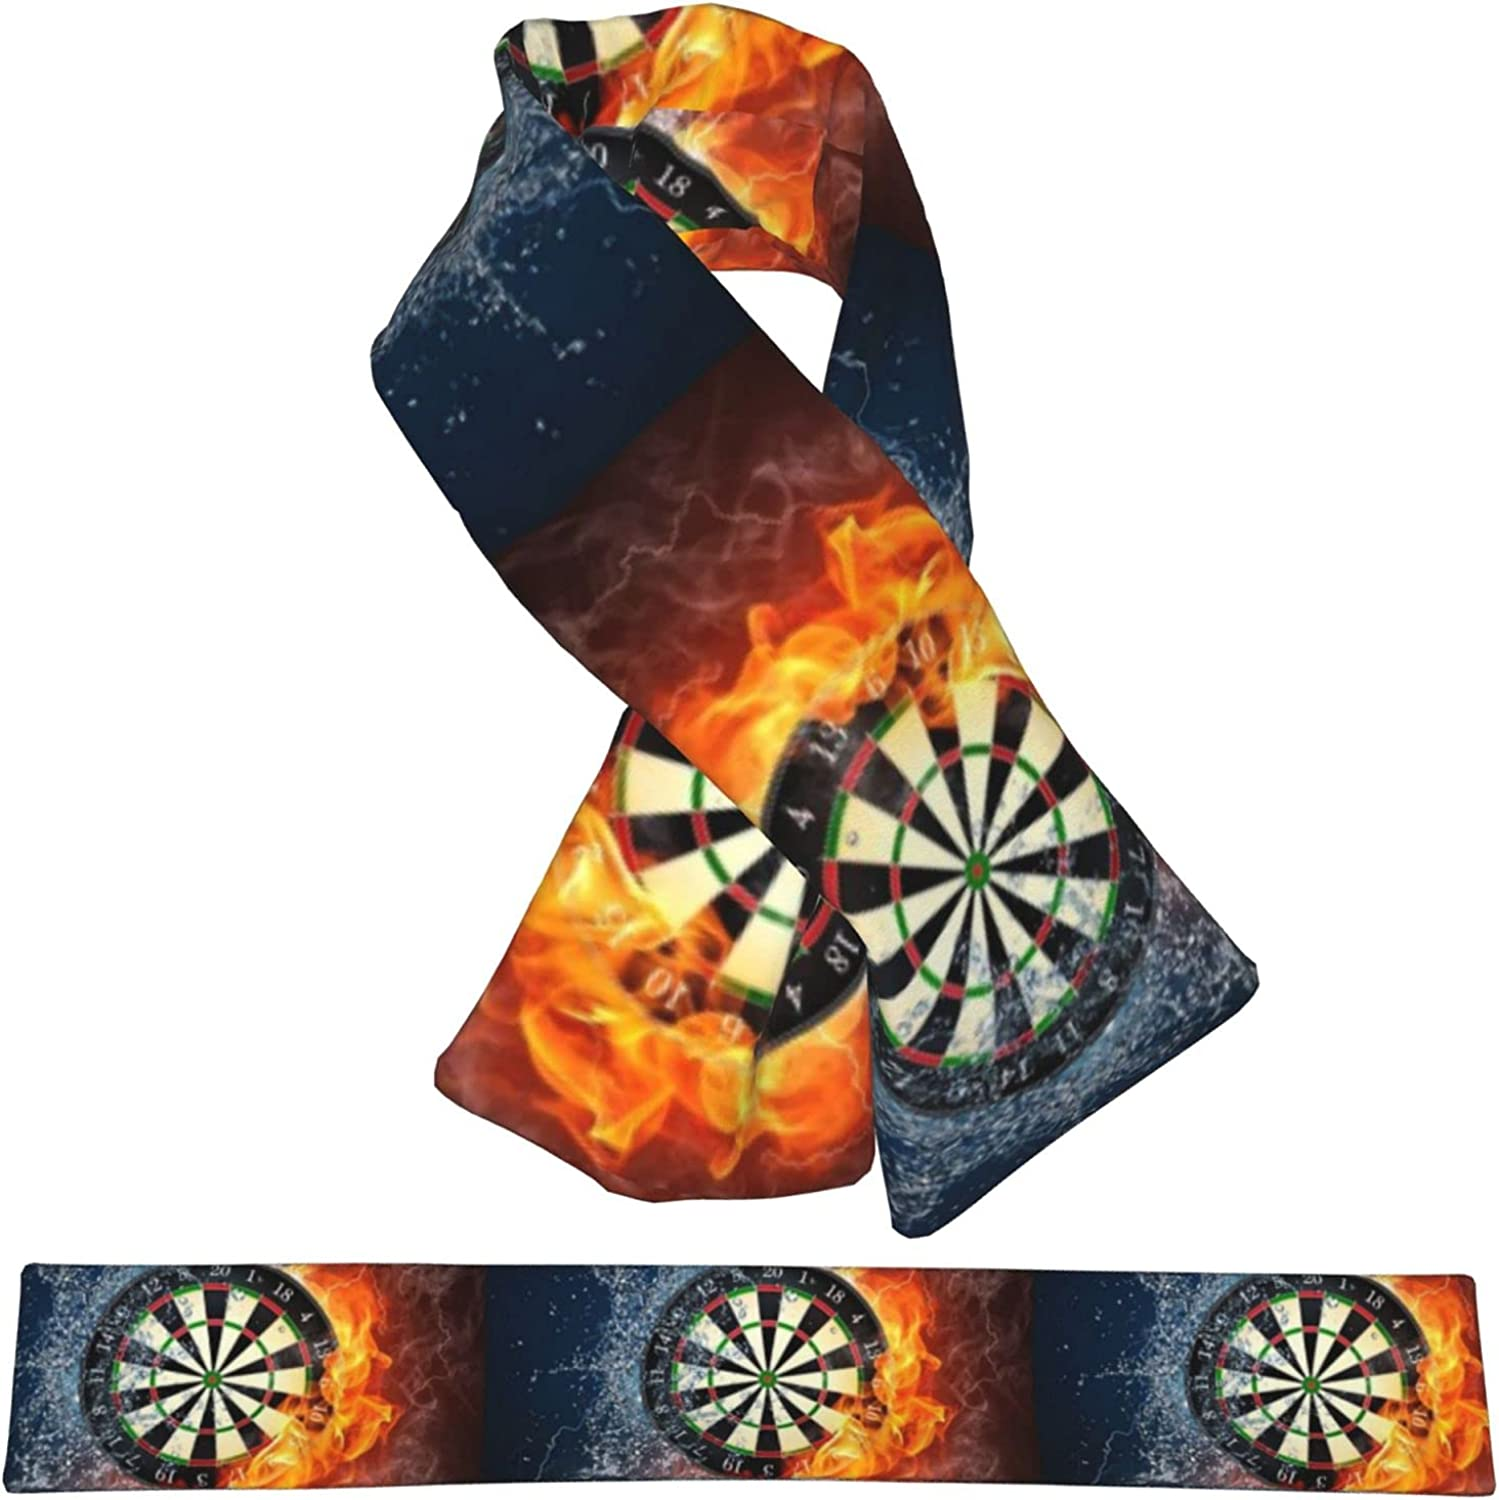 Fire Outstanding Ice Darts Plush Scarf favorite Double-Sided Warm Child